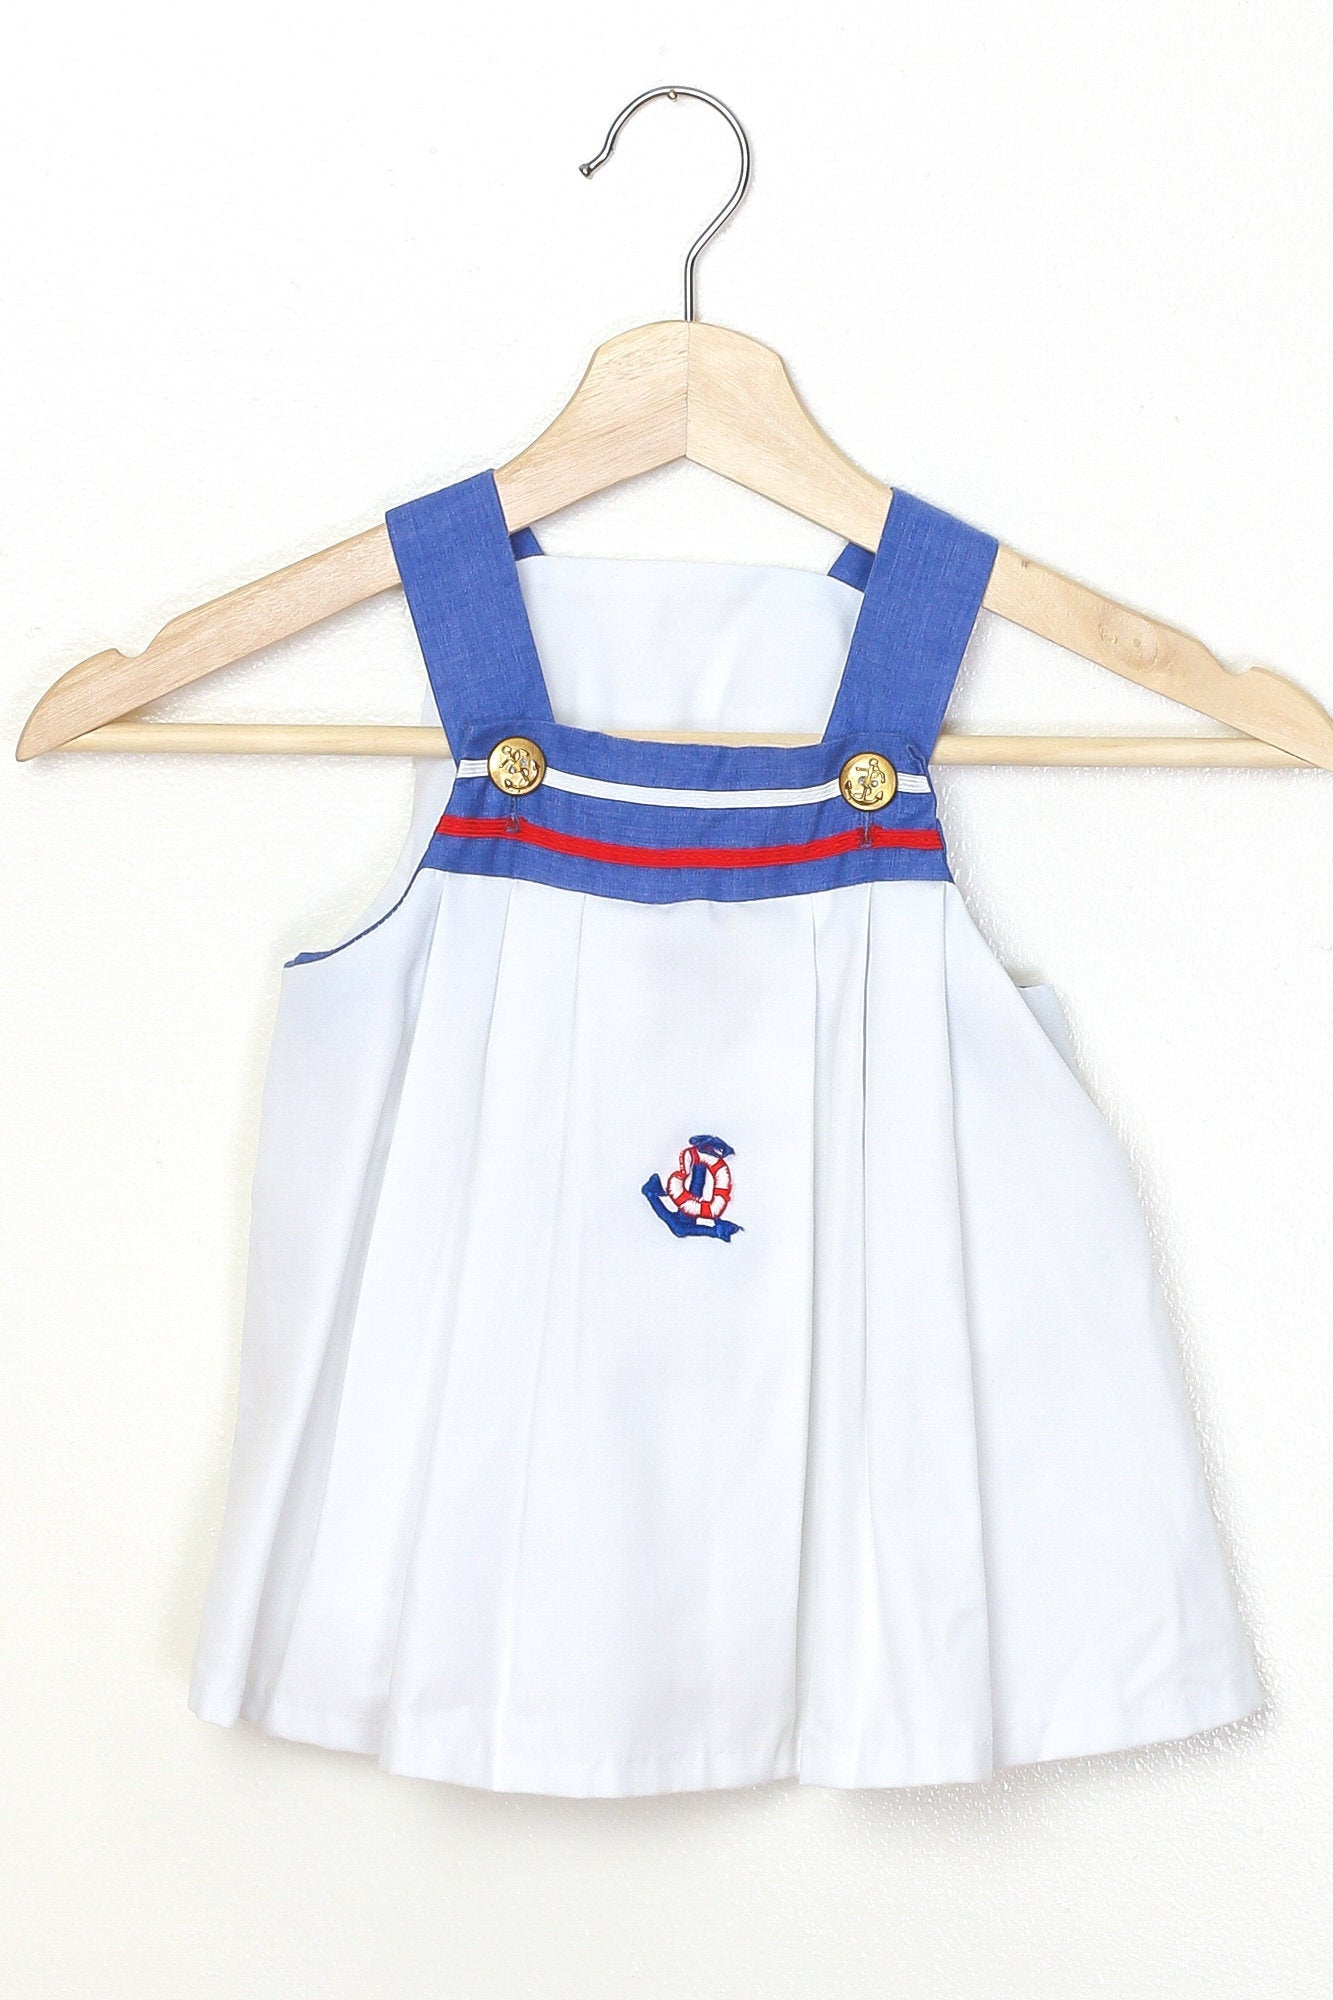 60s Nautical Anchor Toddler Dress - 3T